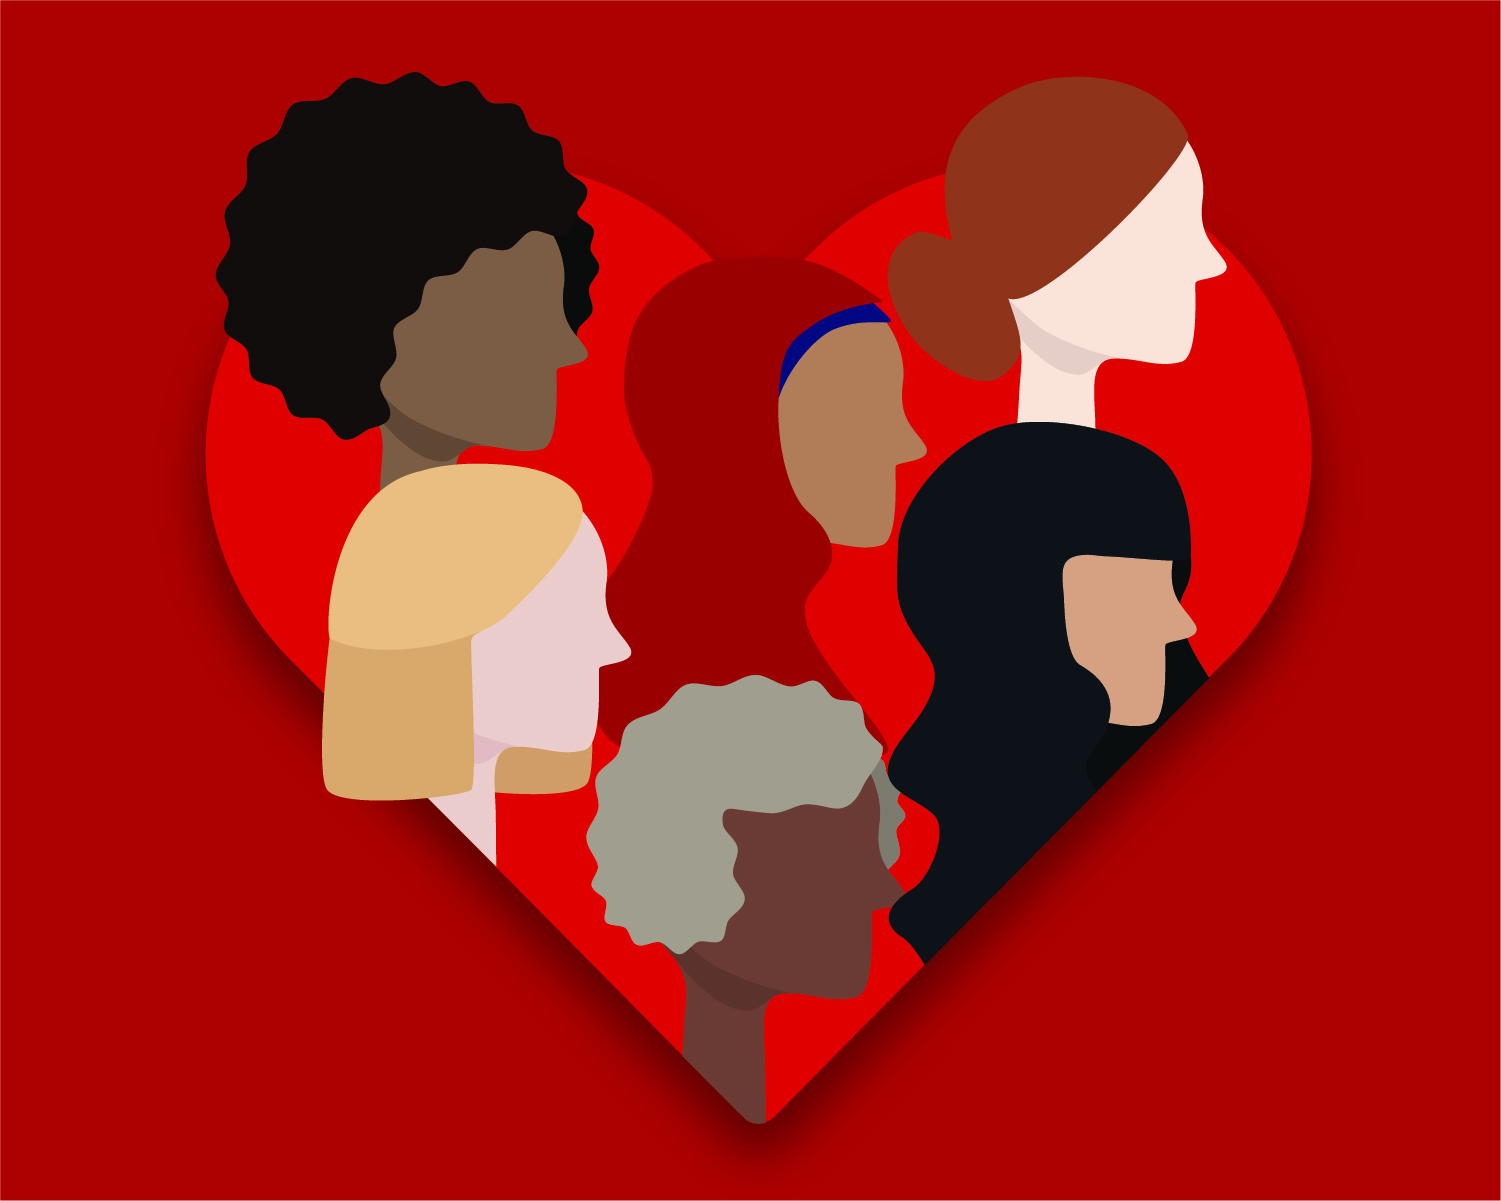 Women's faces in a heart graphic